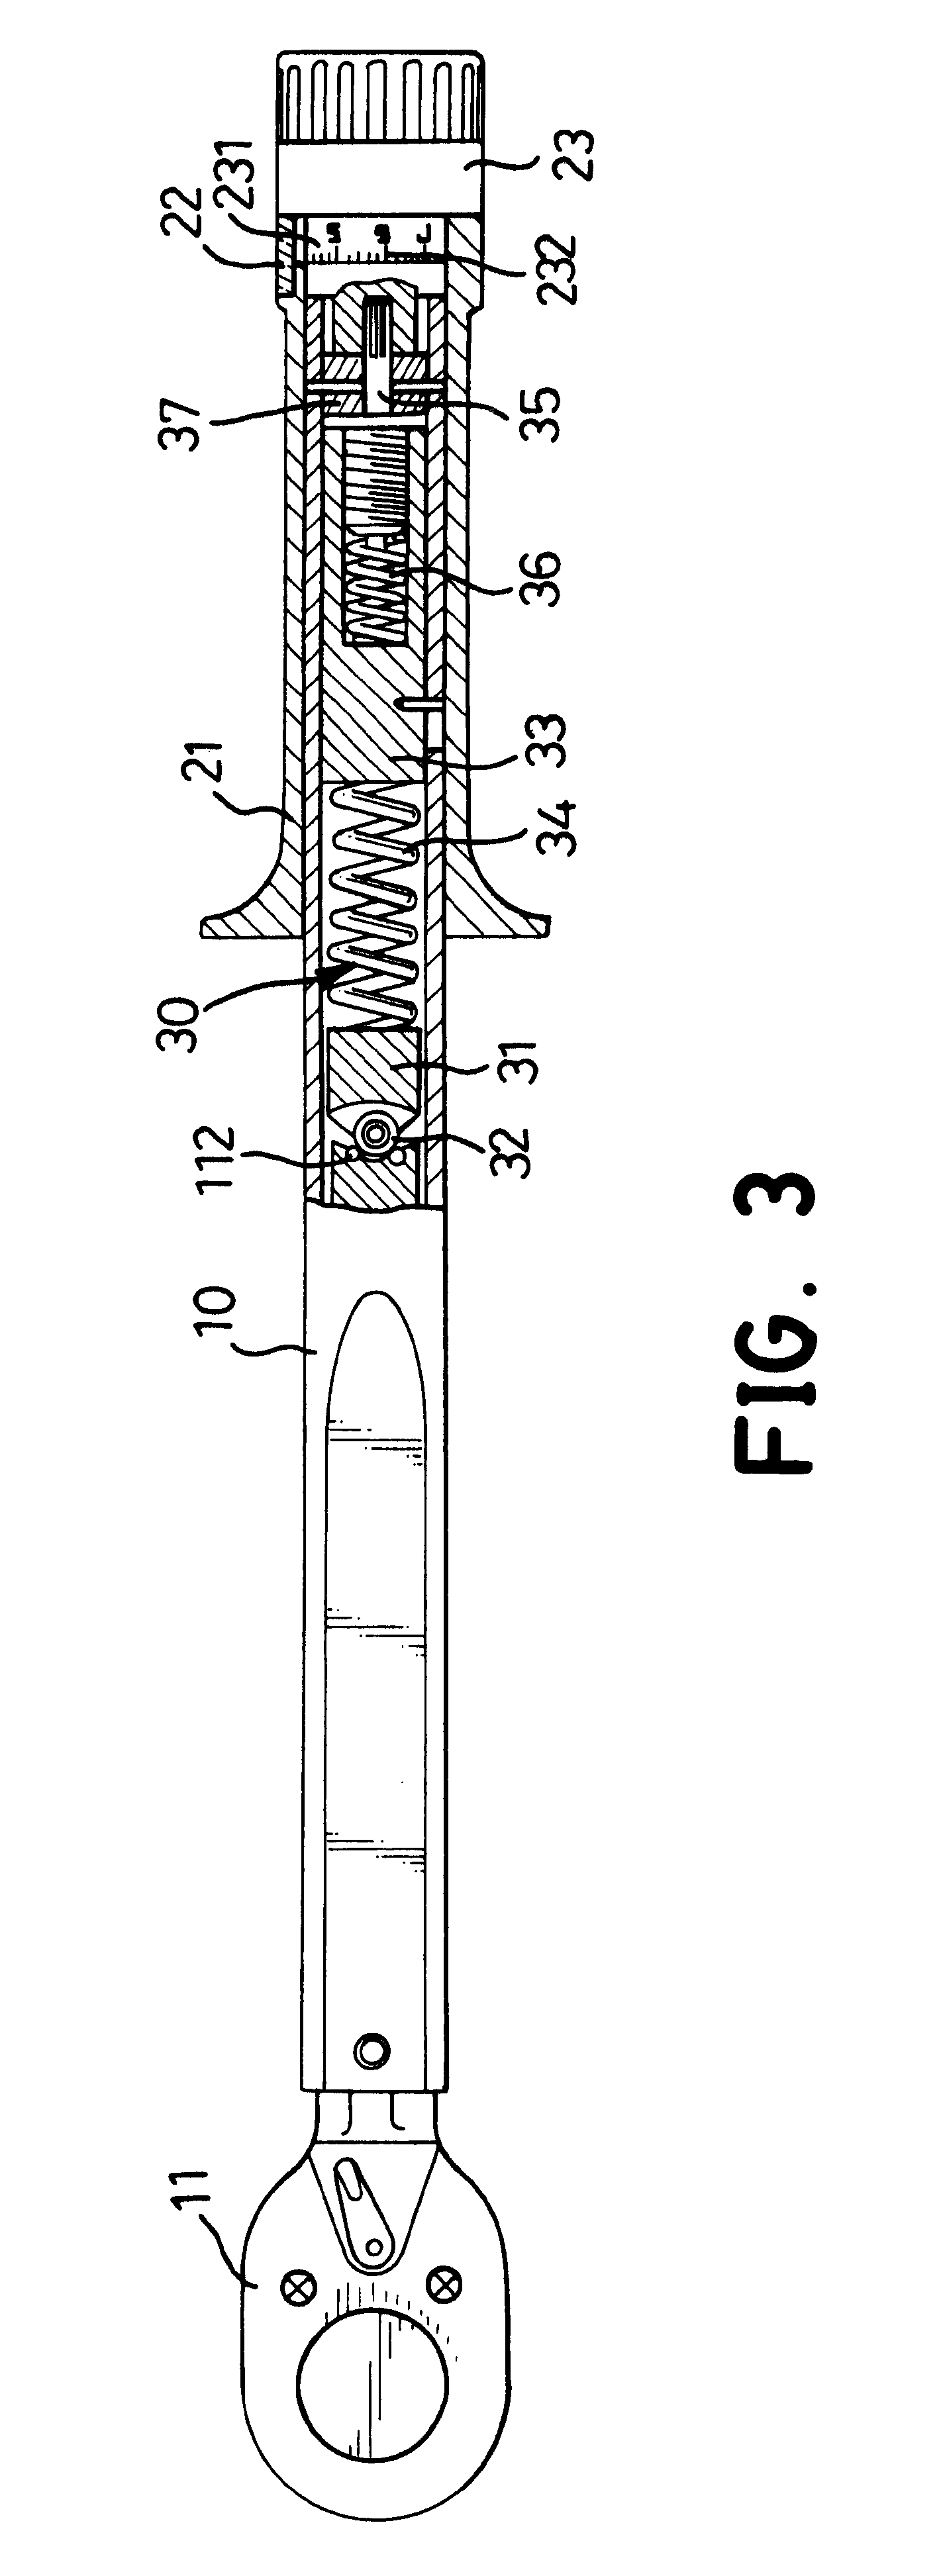 Patent Us6722235 - Torque Wrench With A Scale